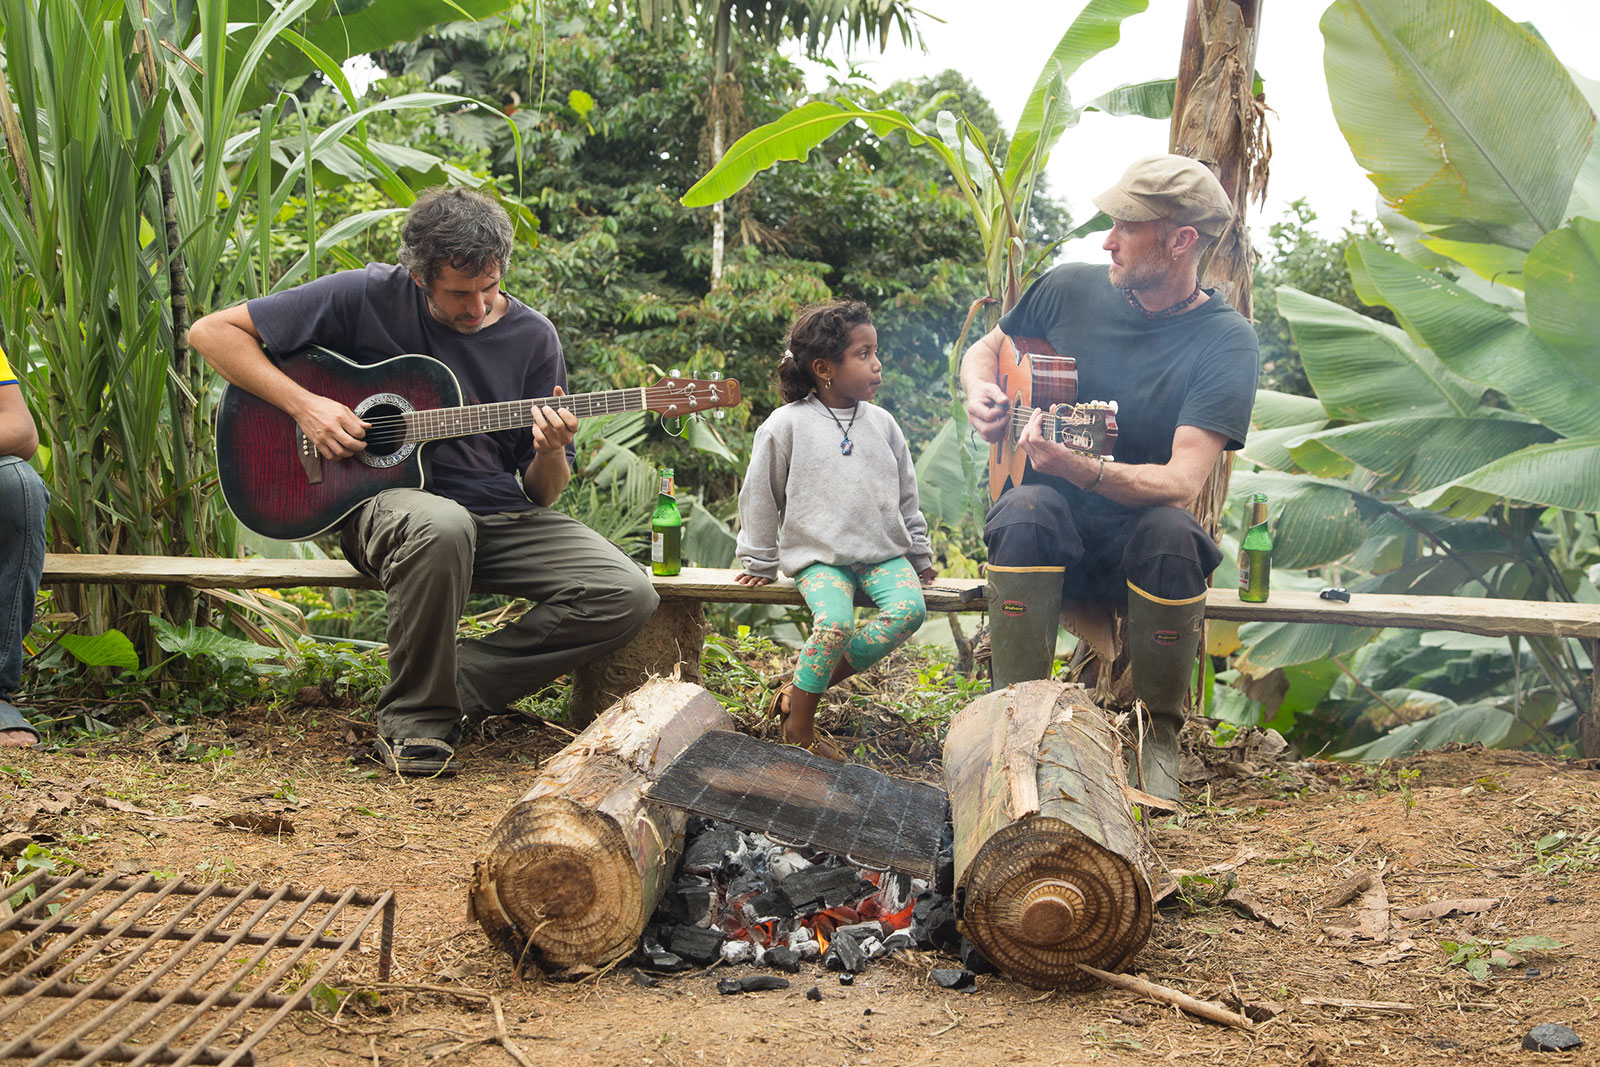 Team members play guitar for visitors while sitting around a fire